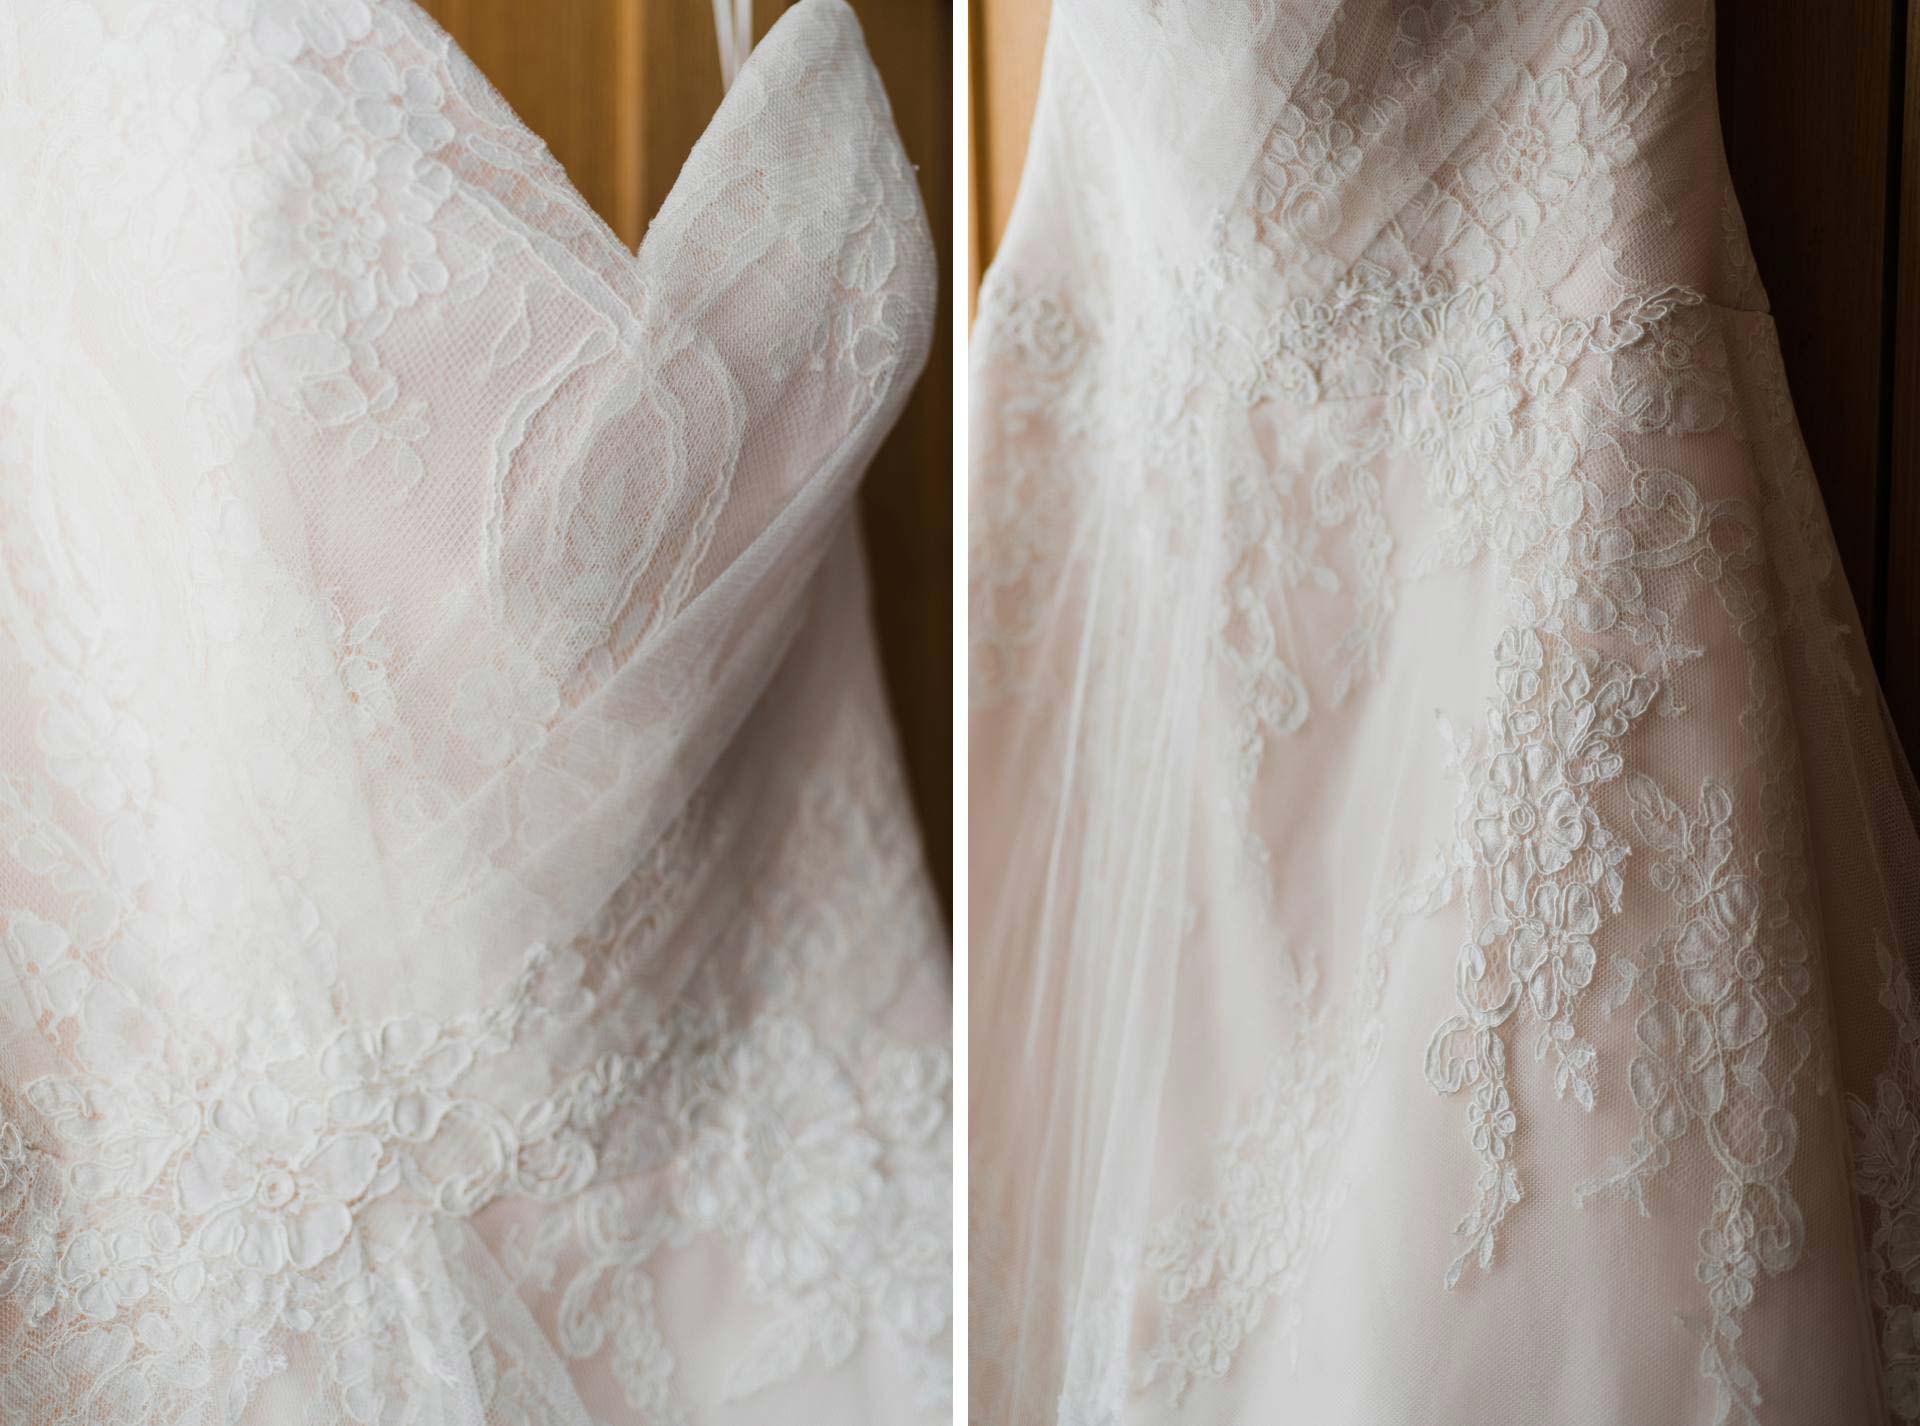 details portraits of wedding gown